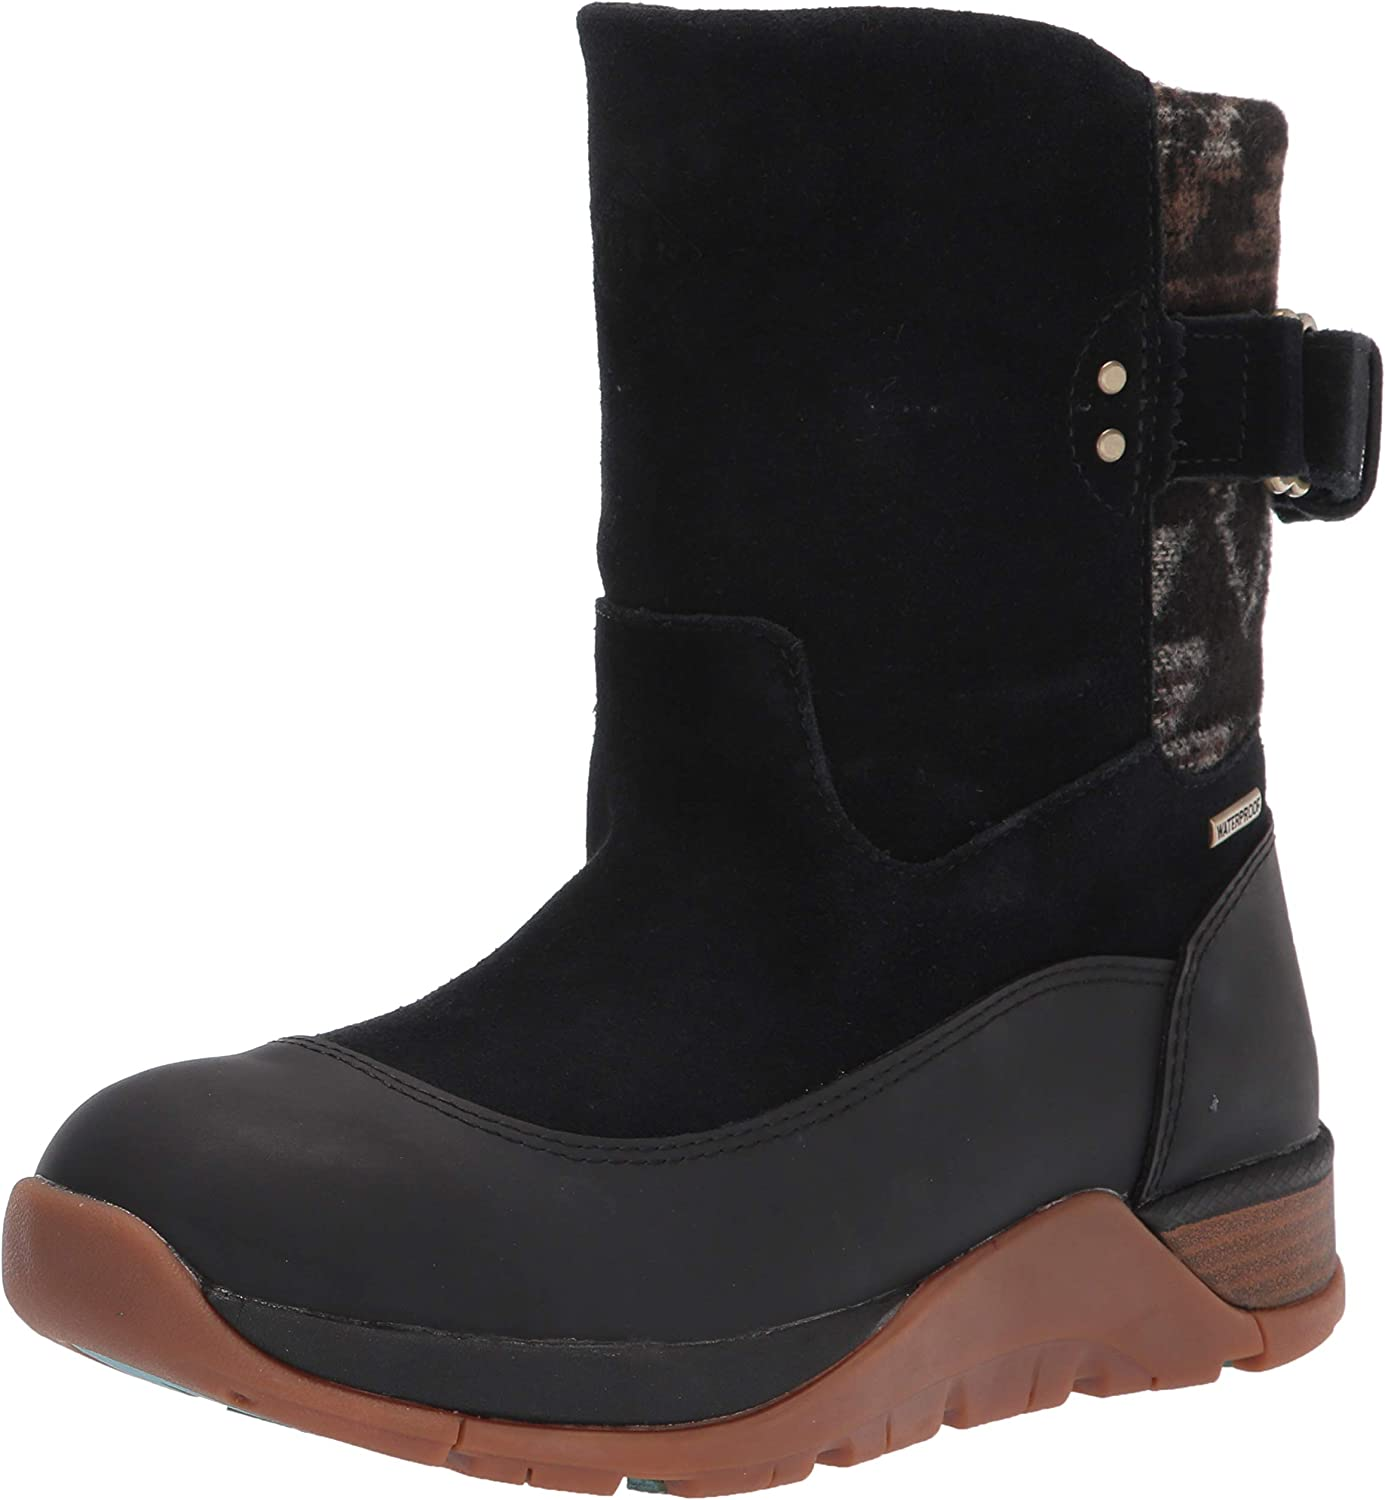 Muck New product! New type Boot Women's Max 75% OFF Leather Mid